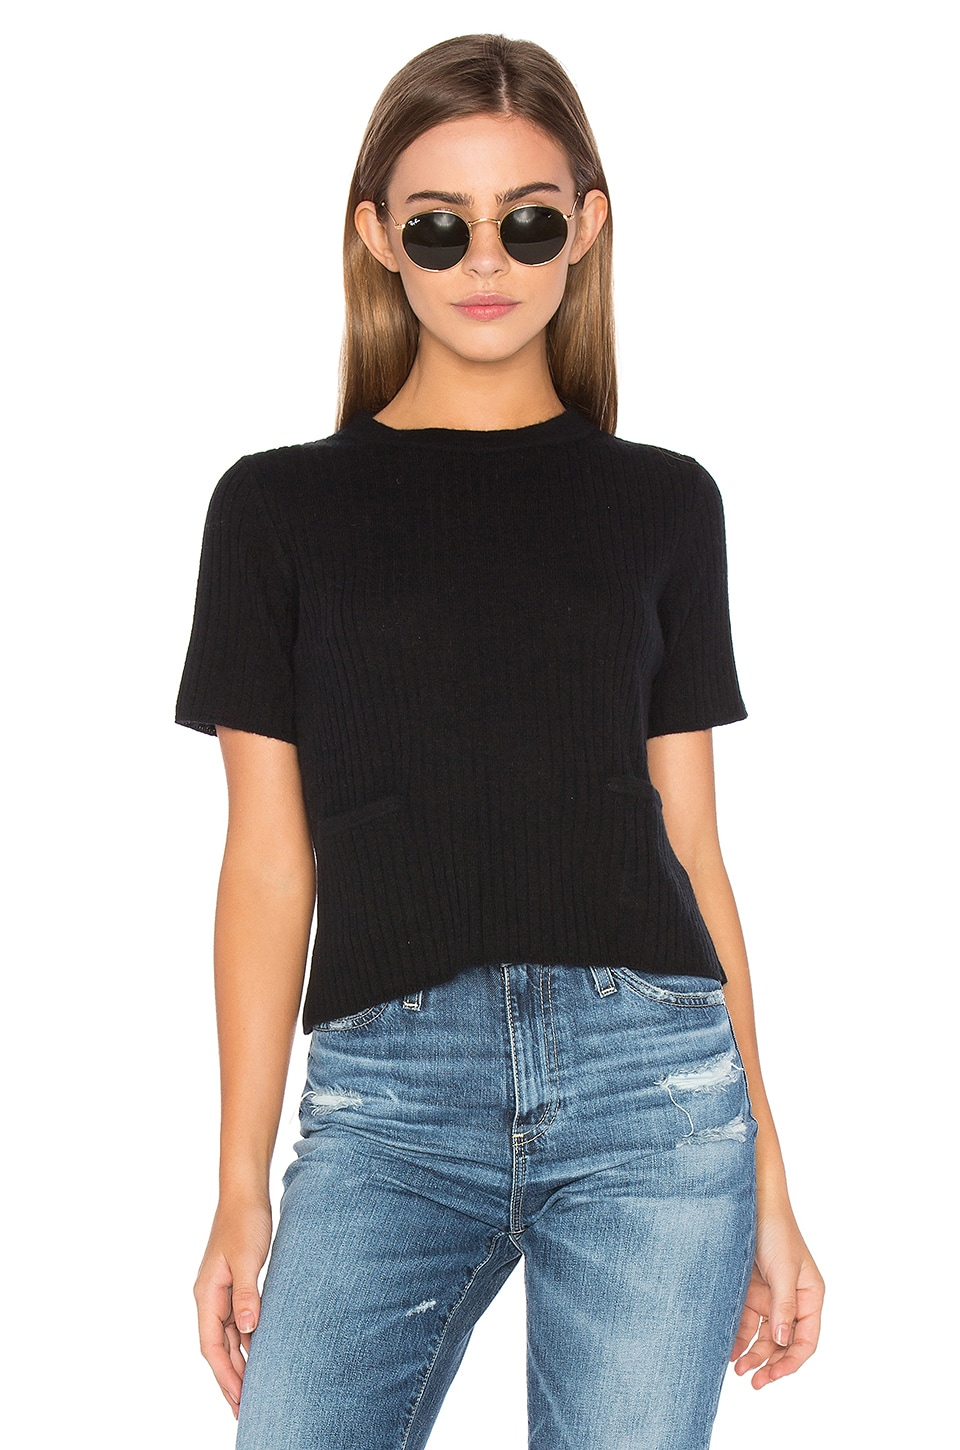 Ribbed Boxy Tee by Autumn Cashmere